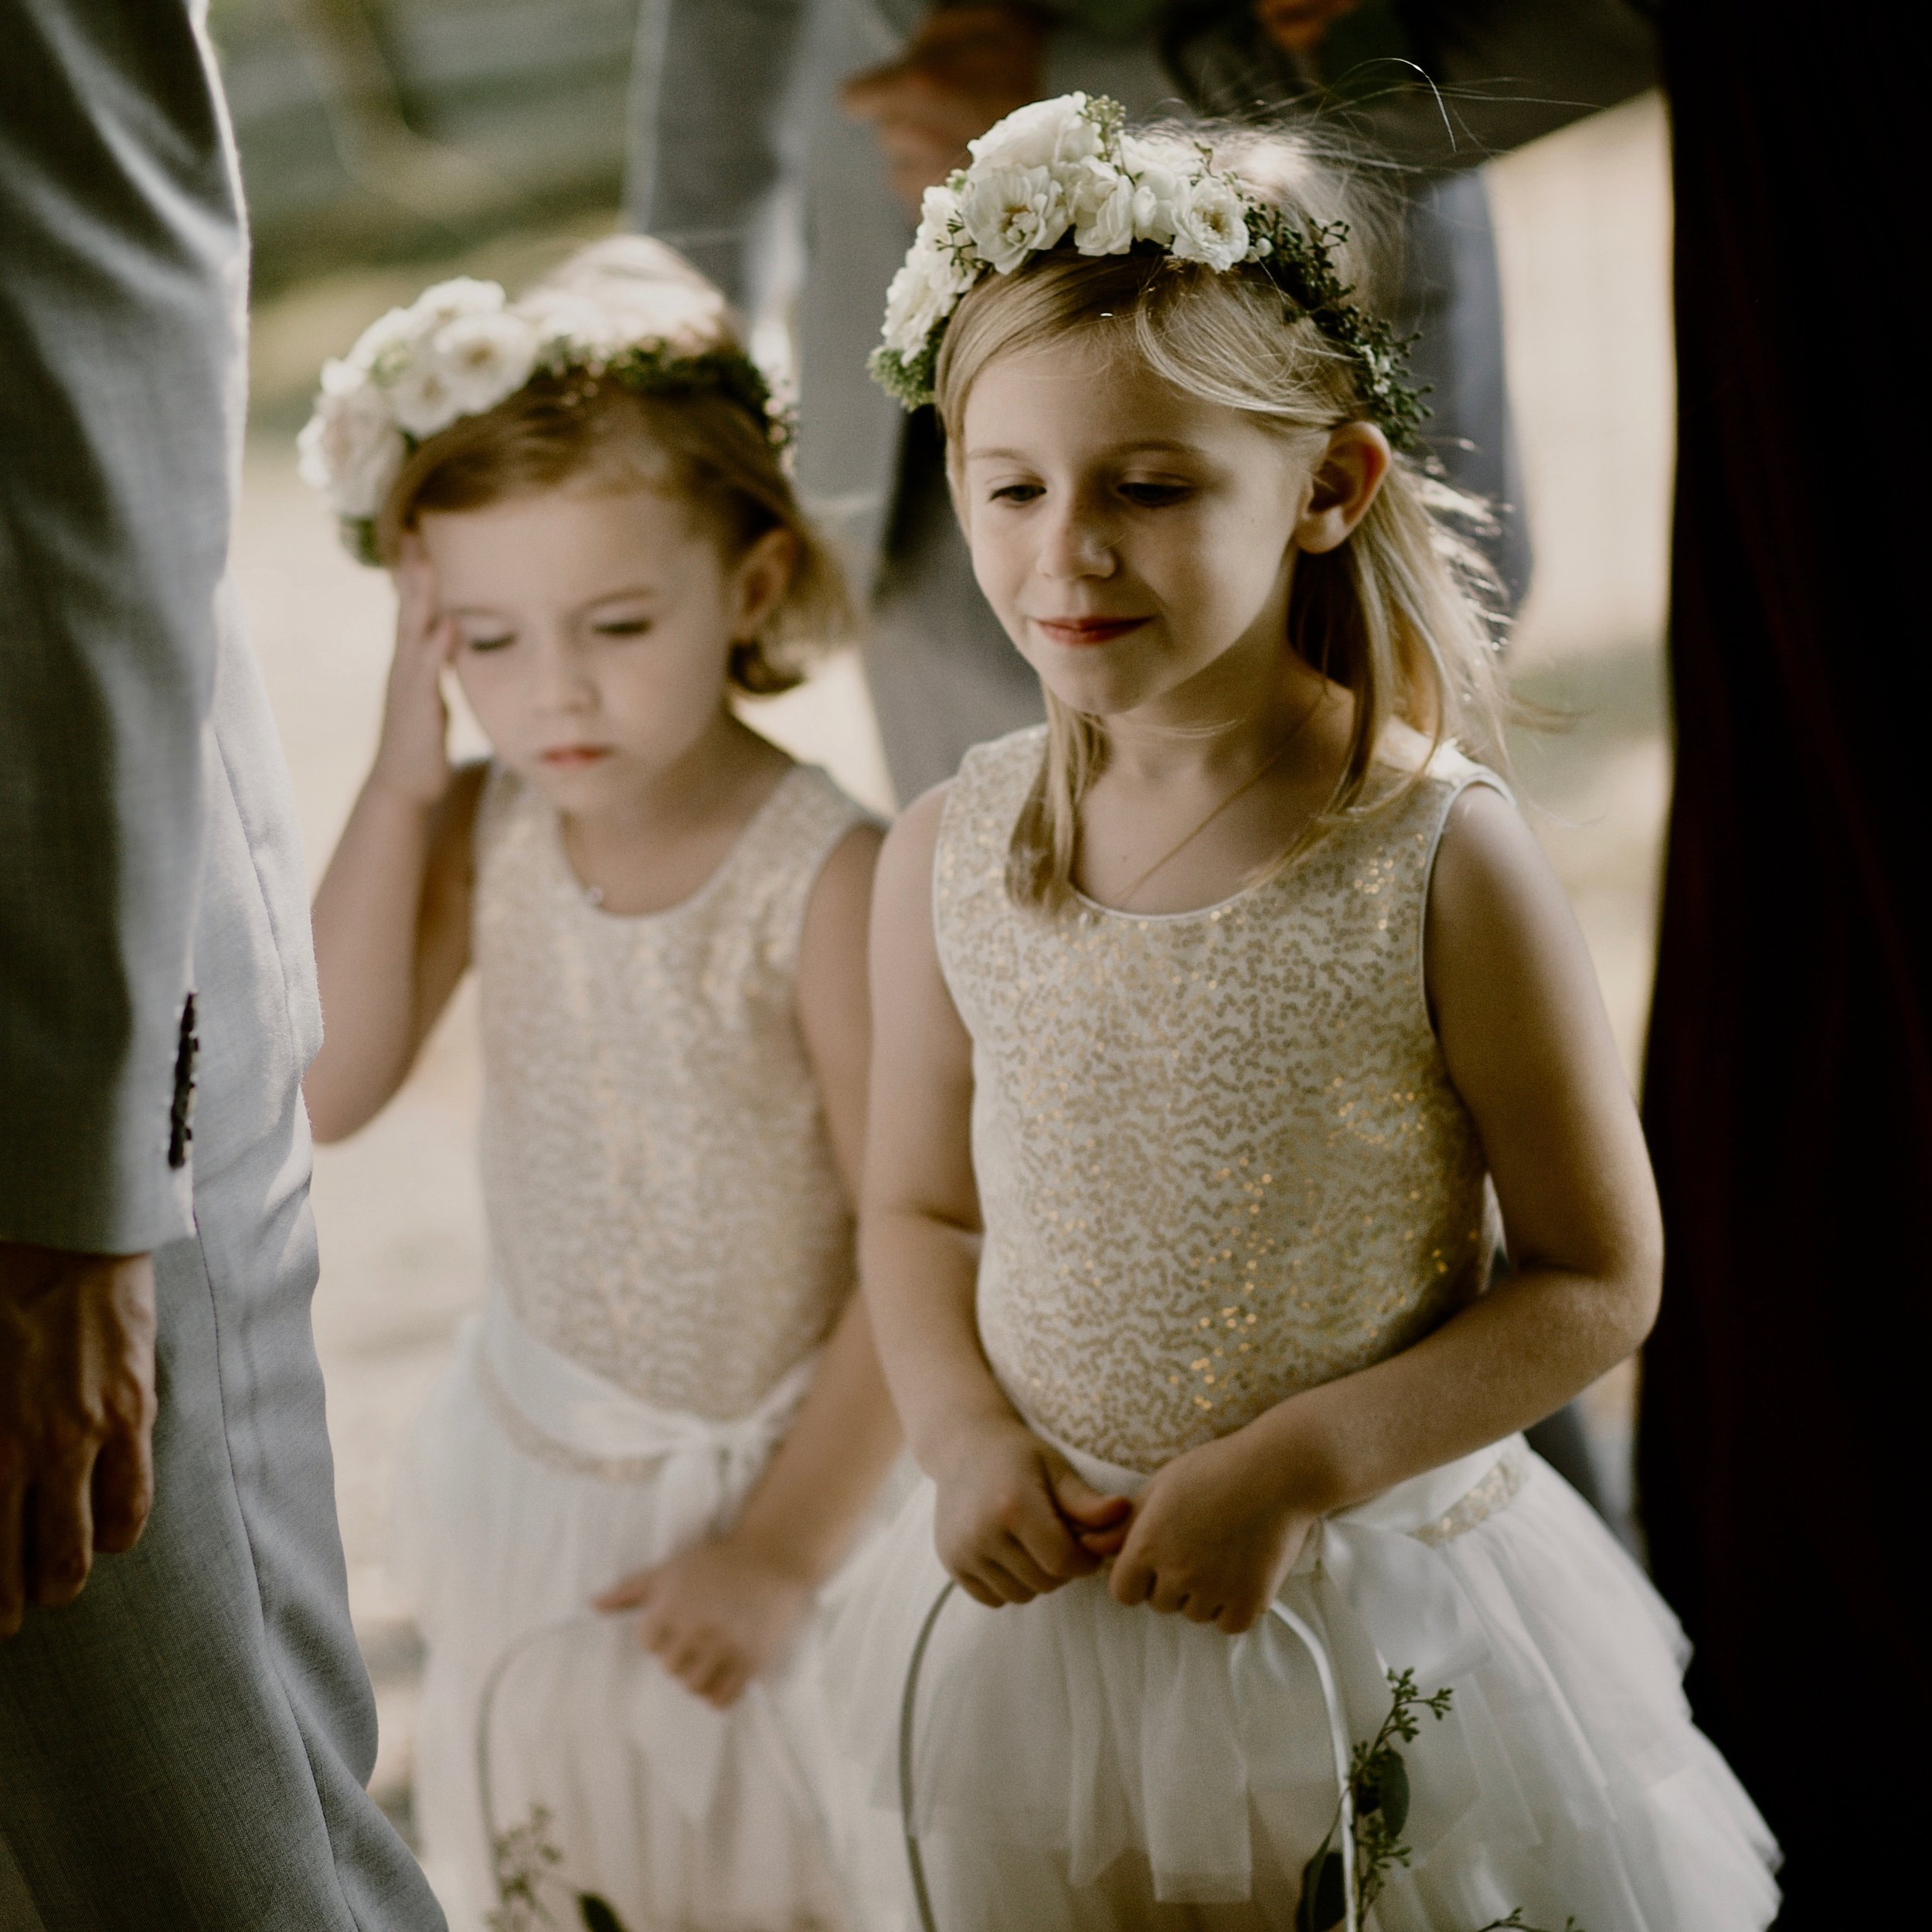 Flower girls with crowns-Photo by Kristen Marie Parker